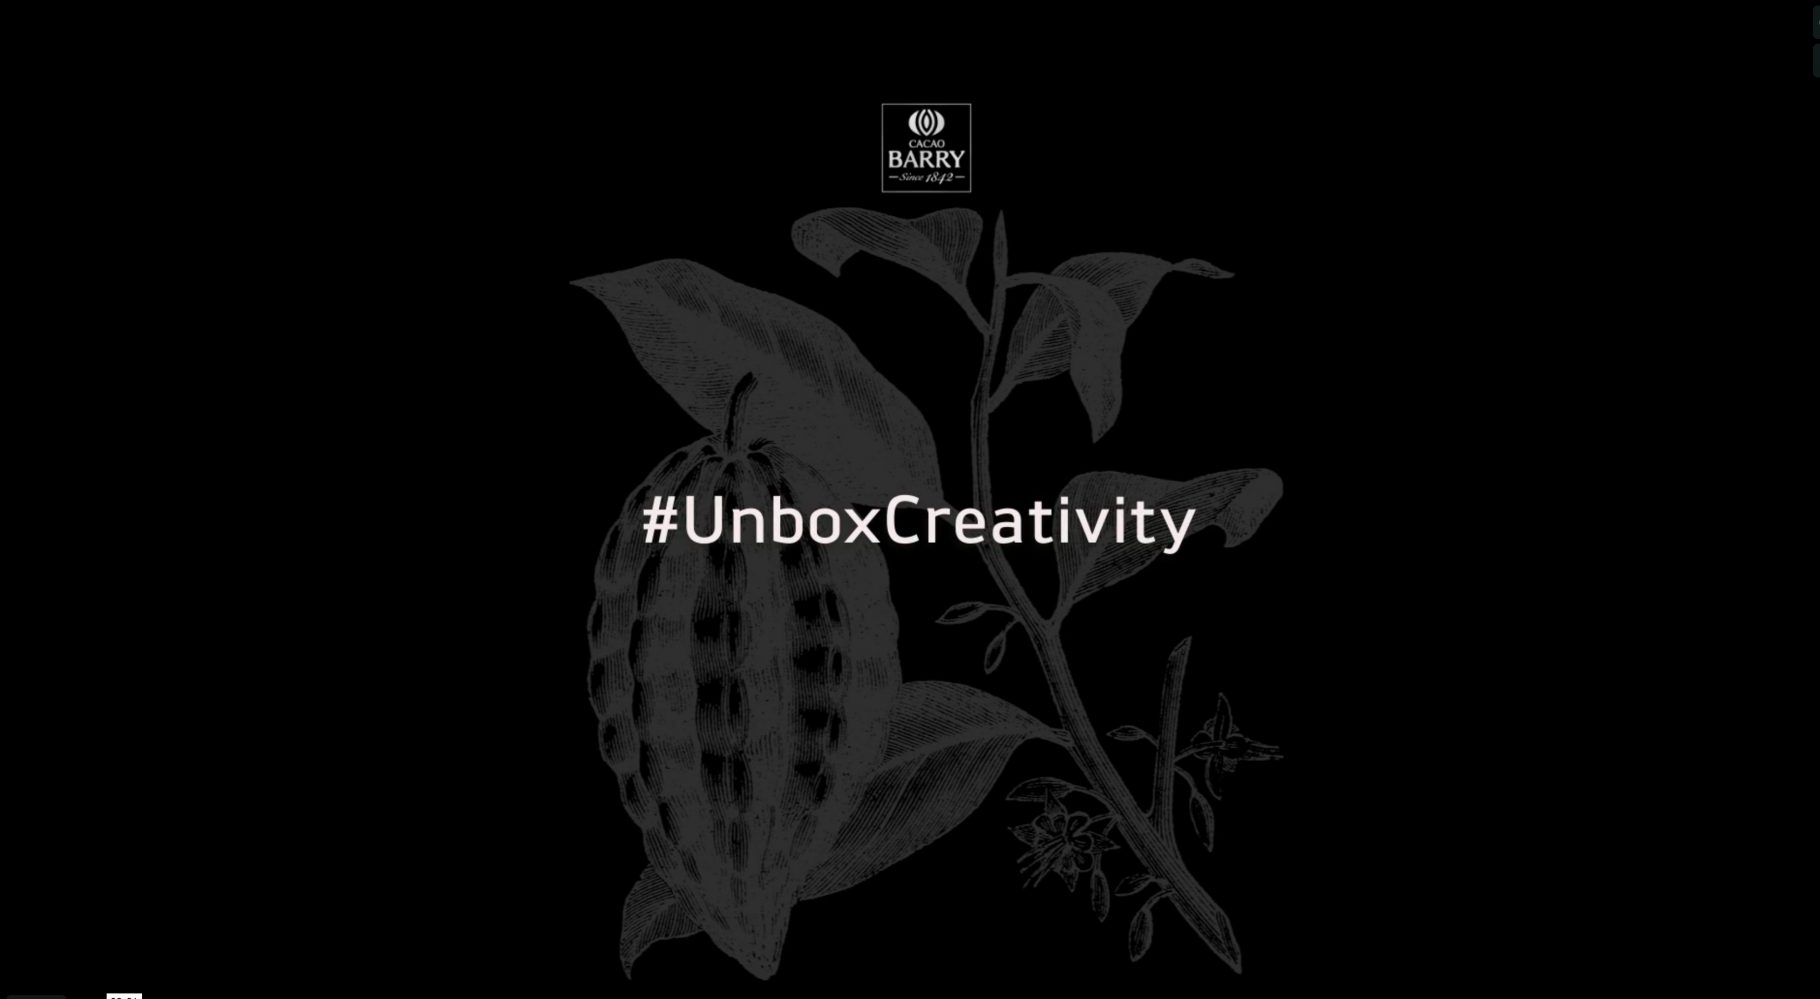 #Unboxcreativity – Brand Video CacaoBarry